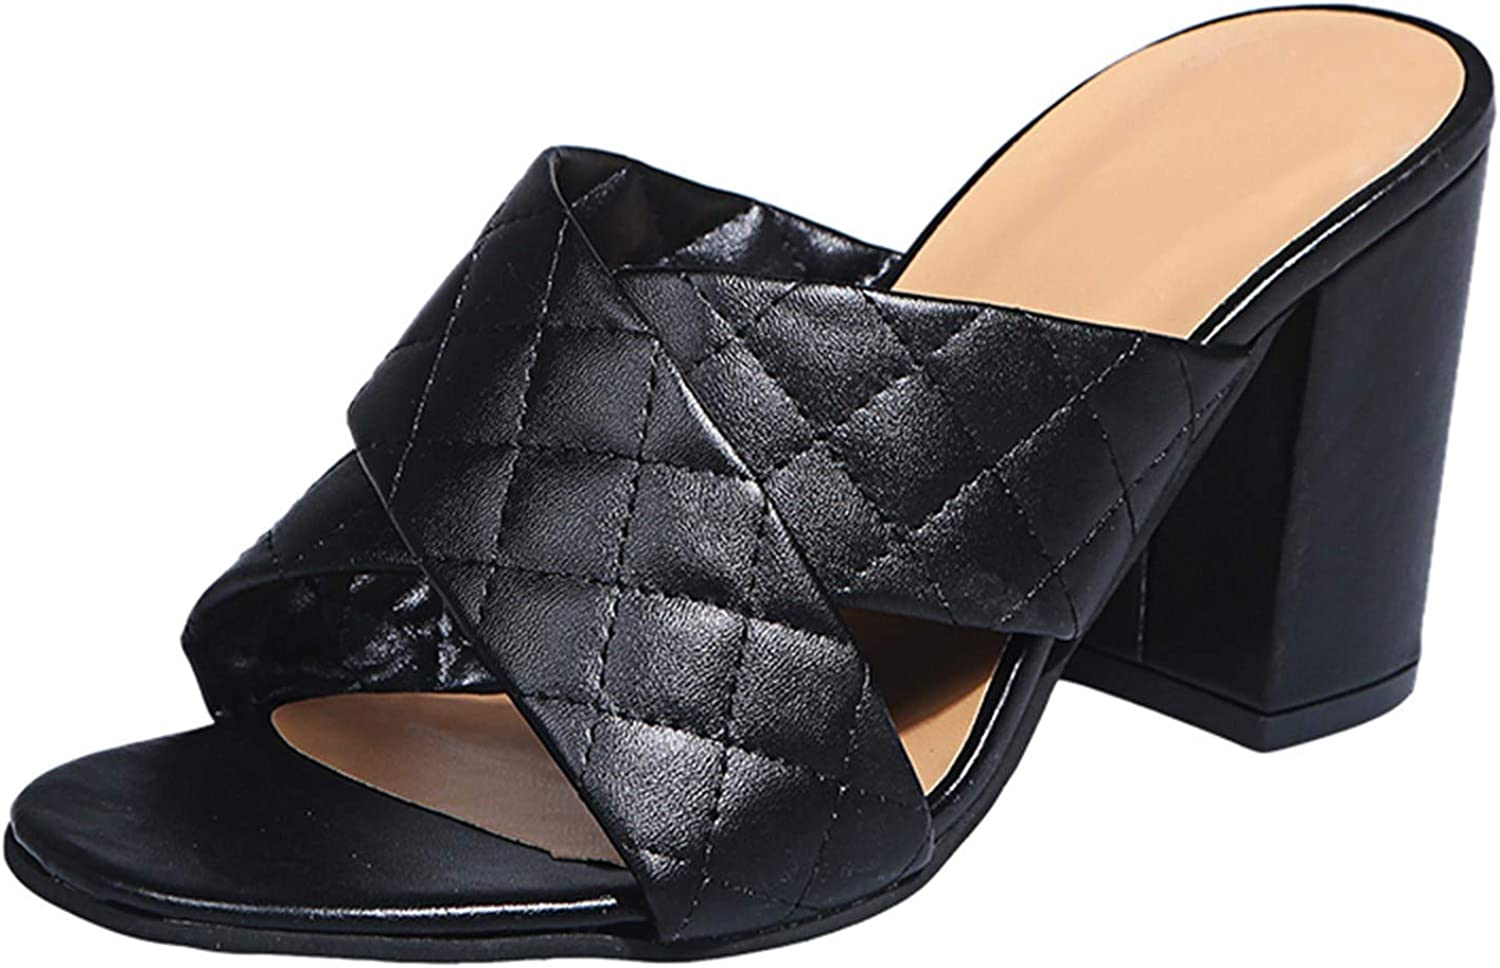 Price reduction Bravetoshop Women's Chunky High Heel Sandals Sl Open Toe Slip On Sales of SALE items from new works